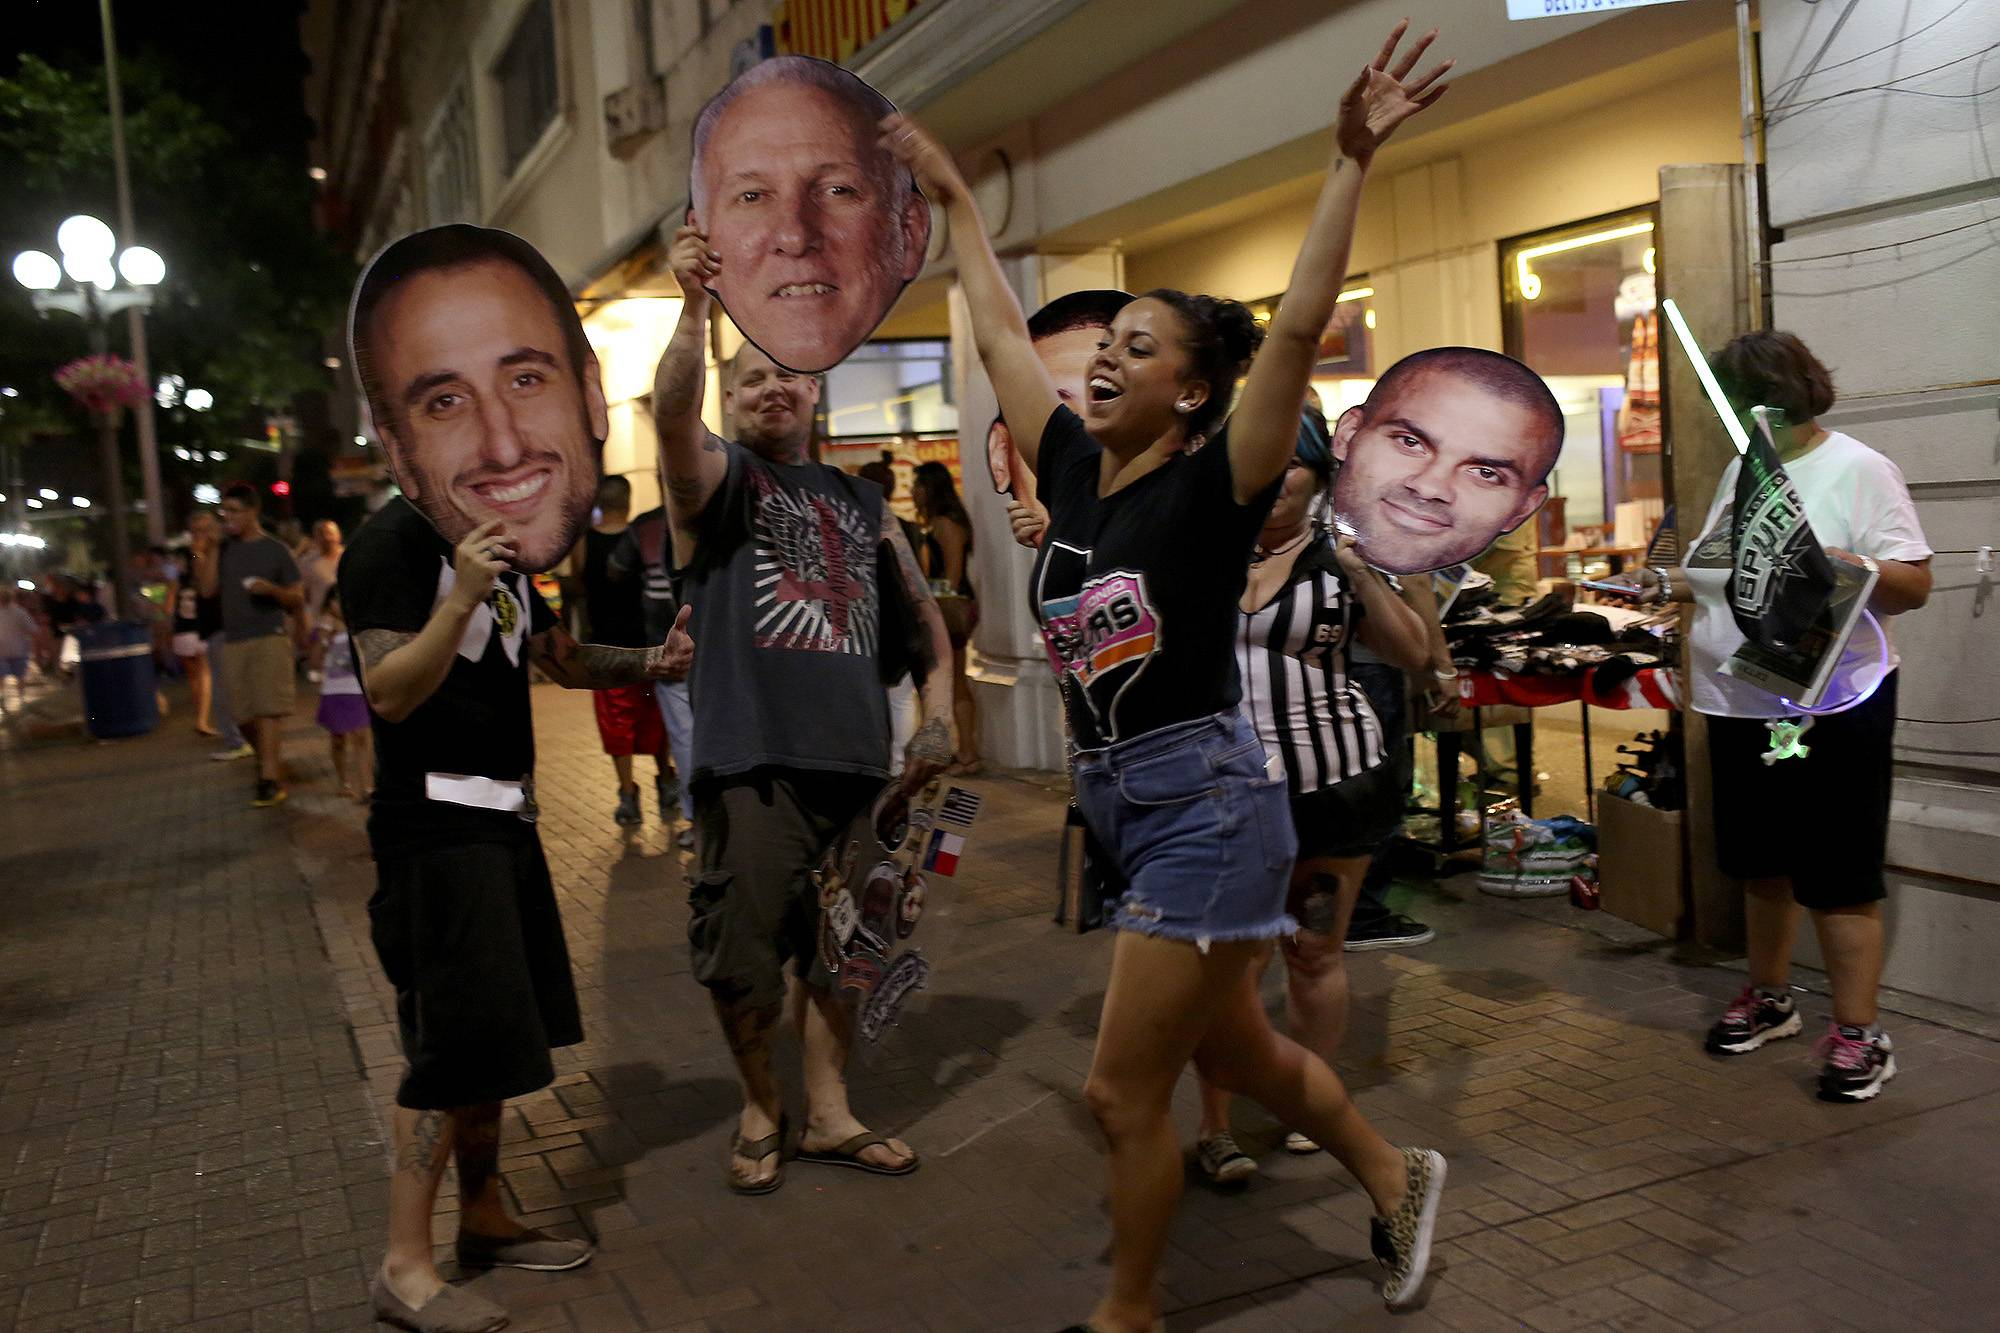 Fans celebrate the Spurs winning the NBA Championship after beating the Miami Heat in downtown San Antonio on Sunday.